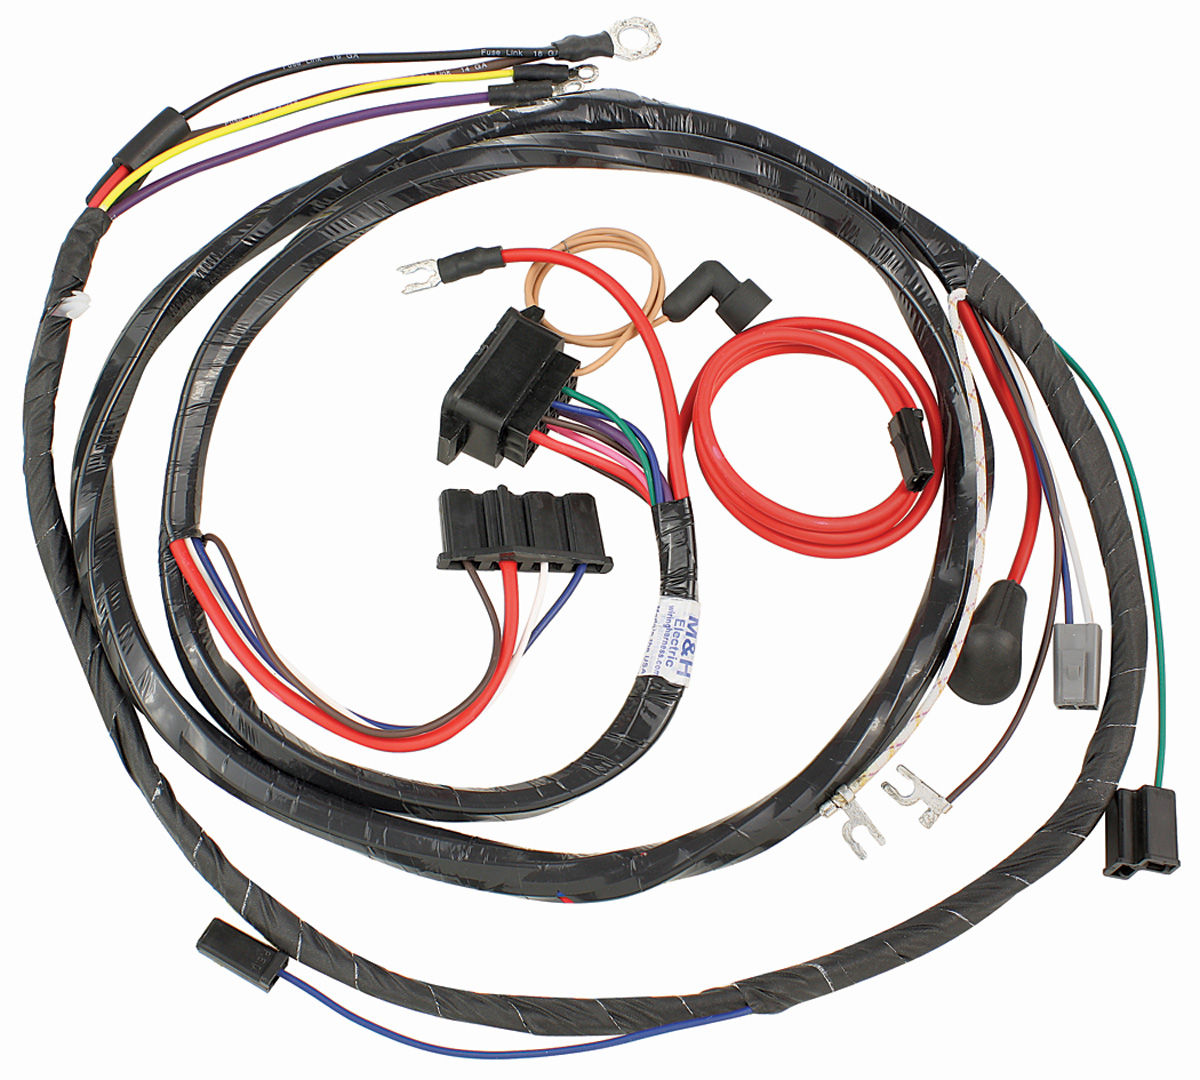 M And H Wiring Harness on h and m bag, h and m backpack, h and m horse, h and m tube, h and m vest, h and m tumblr, h and m boots, h and m tower, h and m furniture, h and m wetsuit,